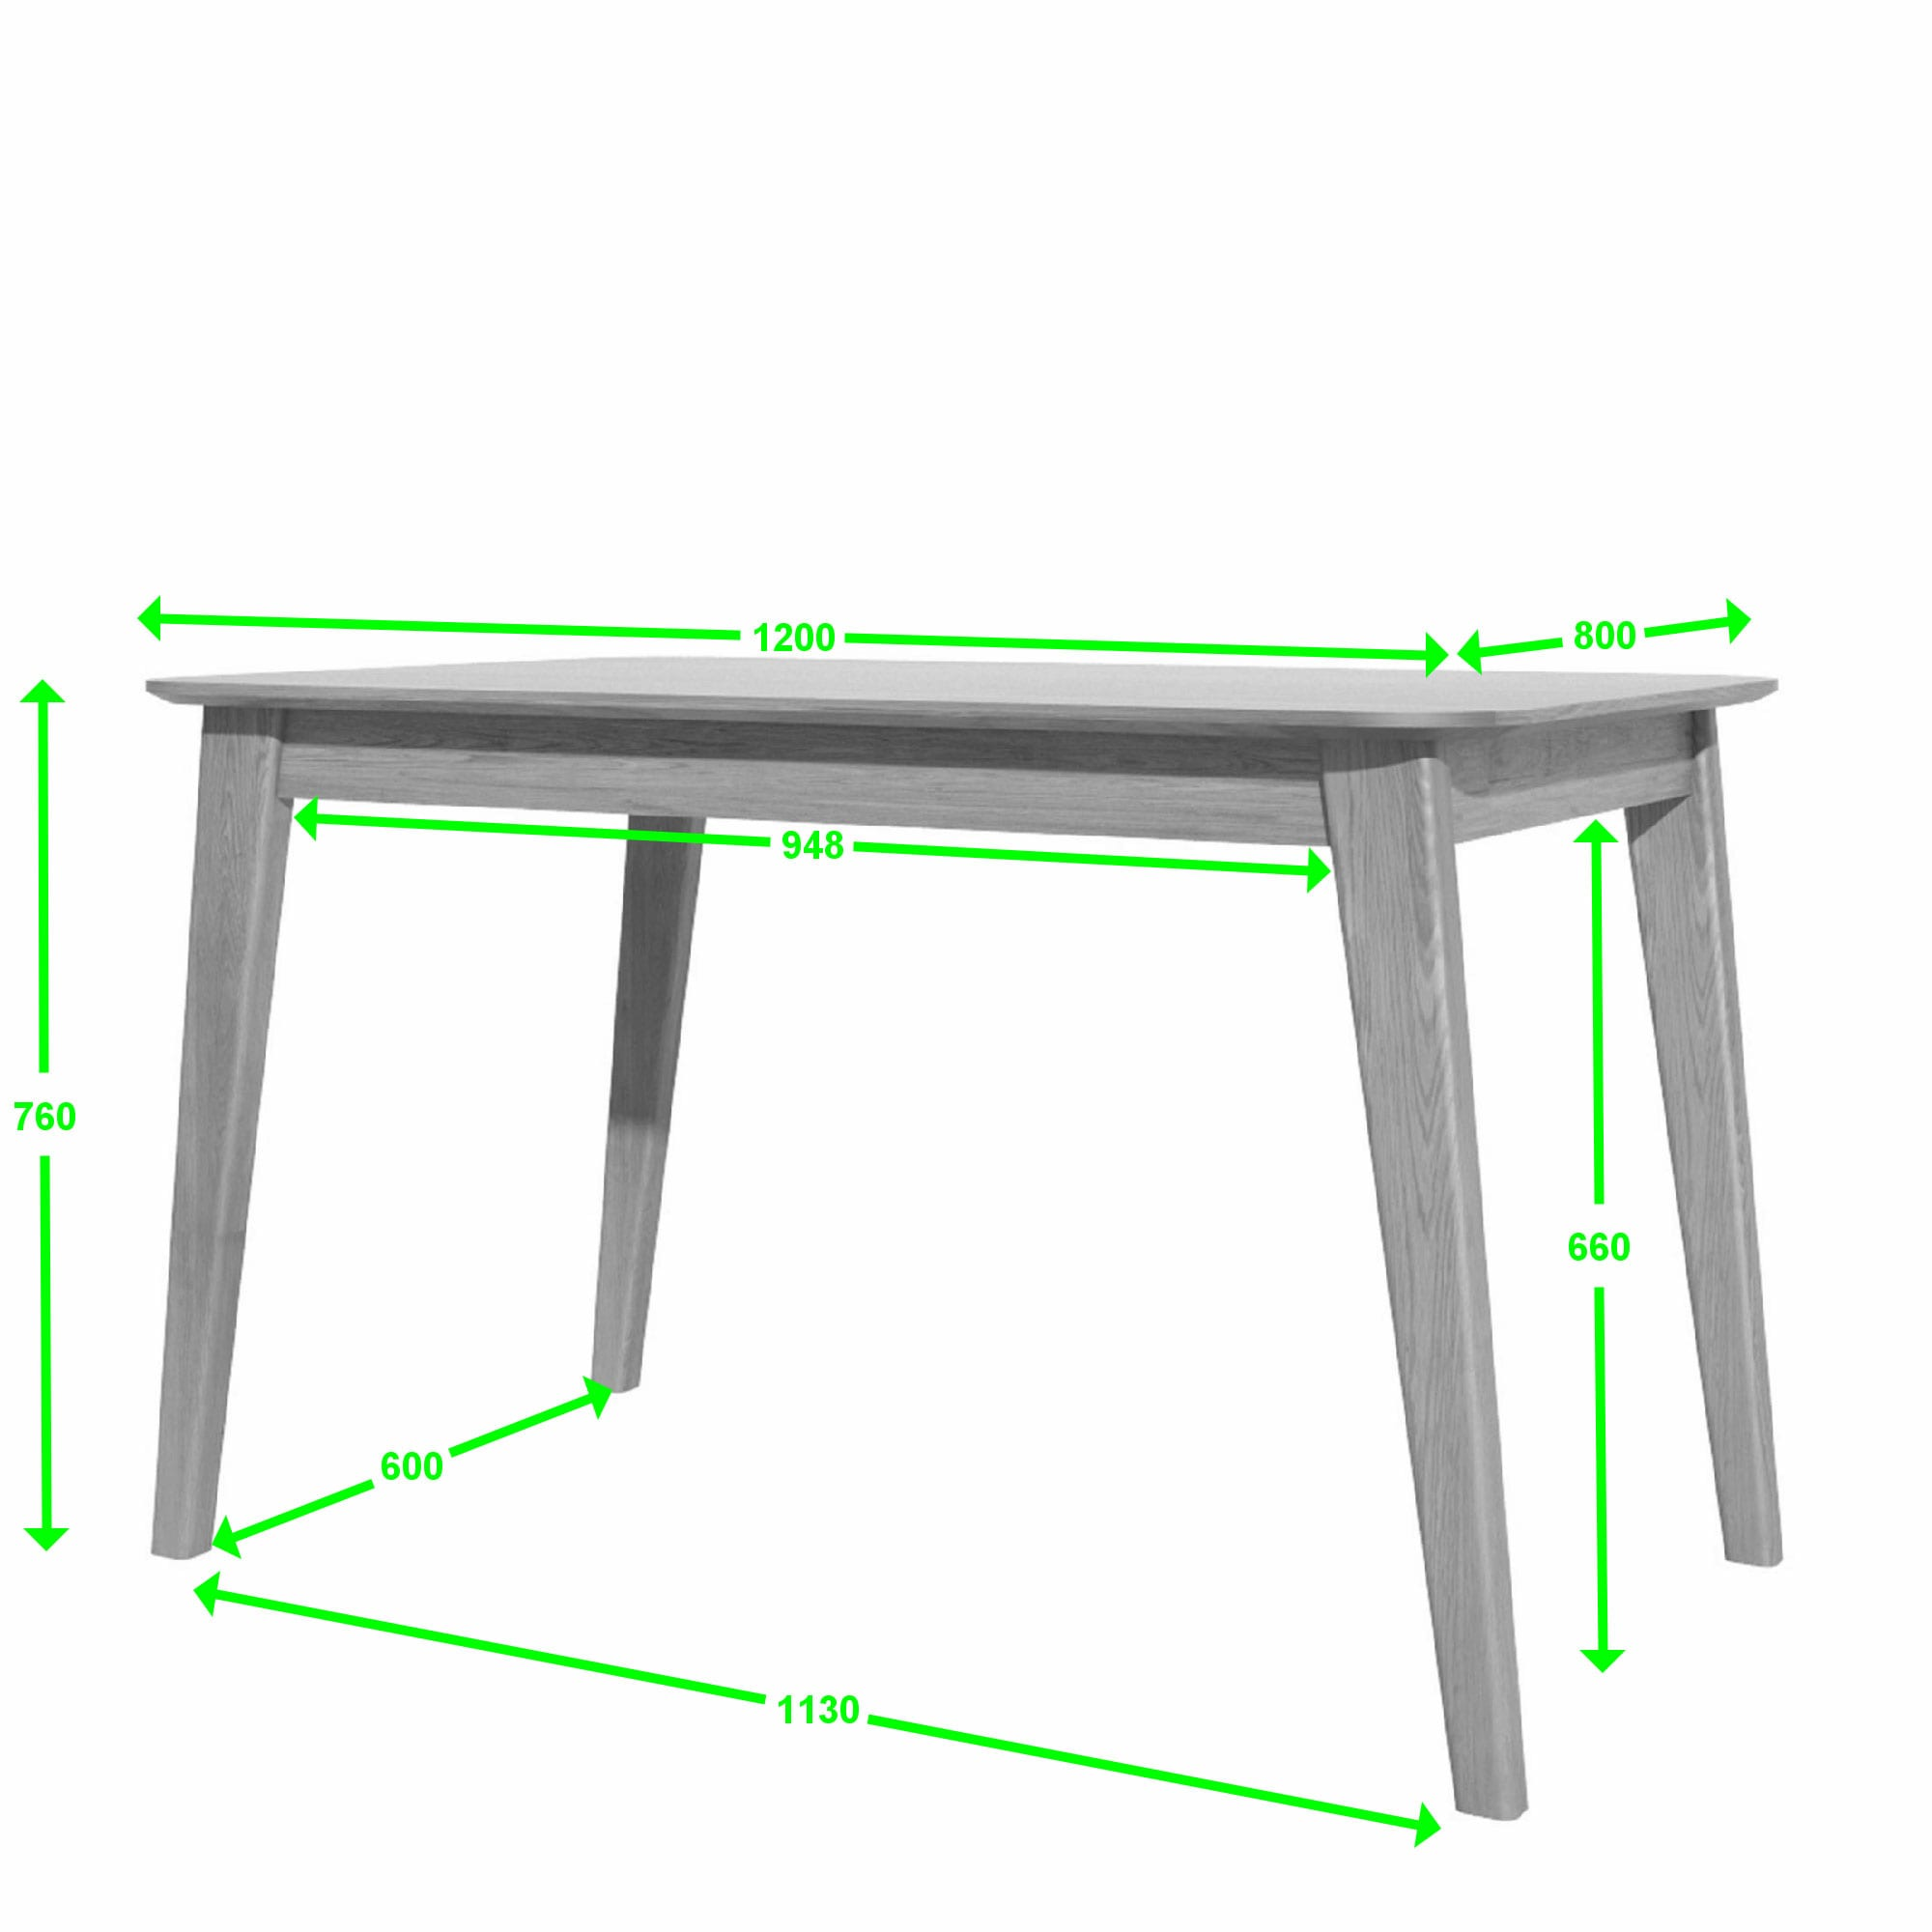 SCA1250T Scandic dining table 125x800 measures